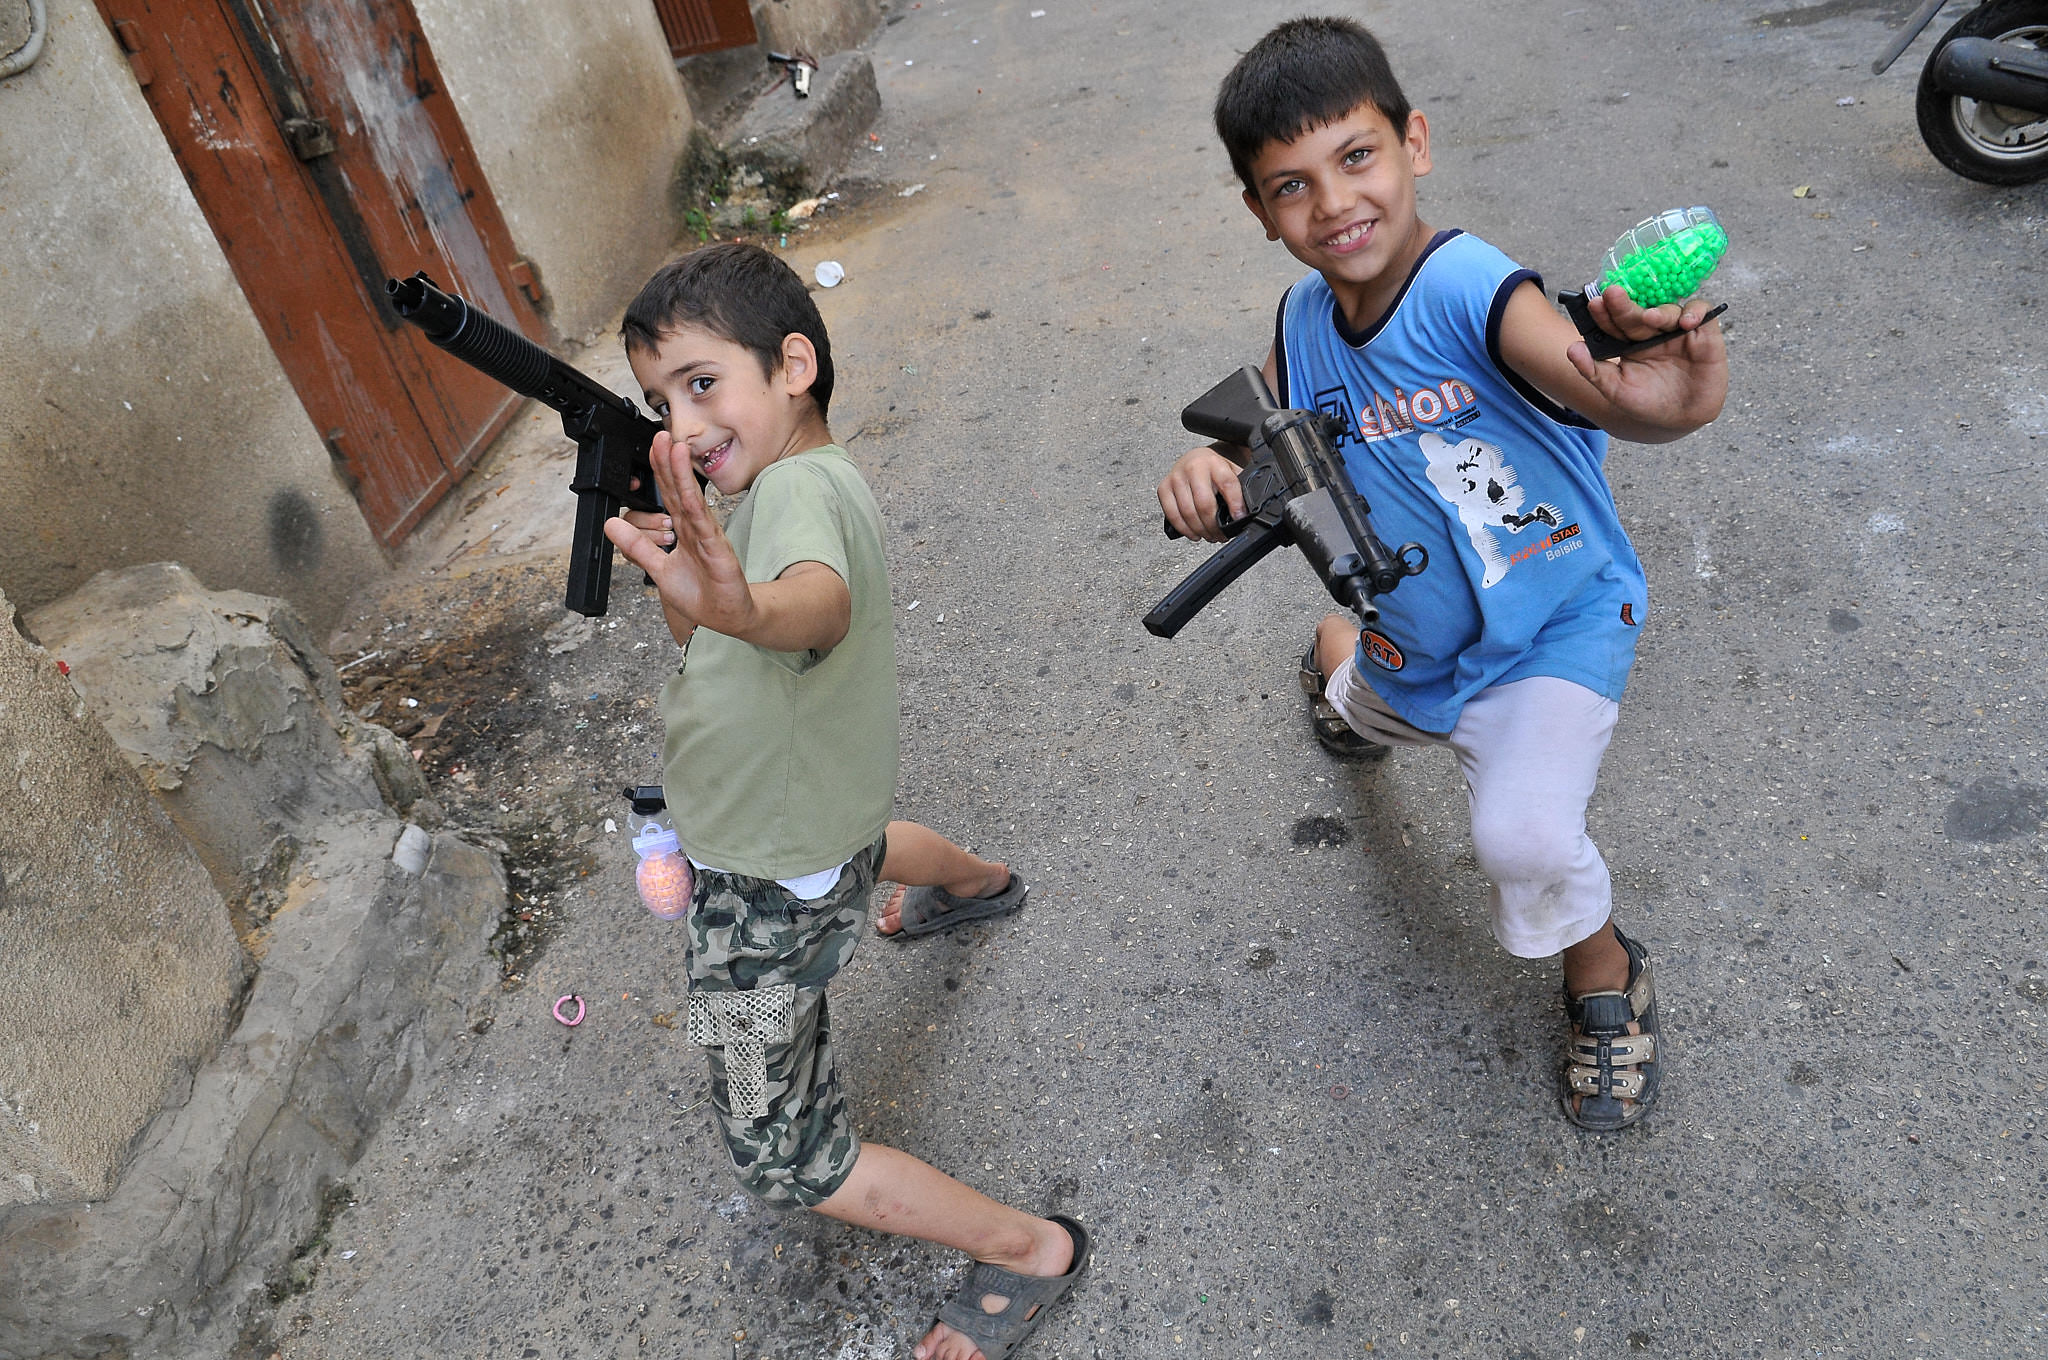 Two boys play war on the streets of Ras El Nabeh, an area that has seen numerous outbreaks of violence over the years. Beirut, 2009.